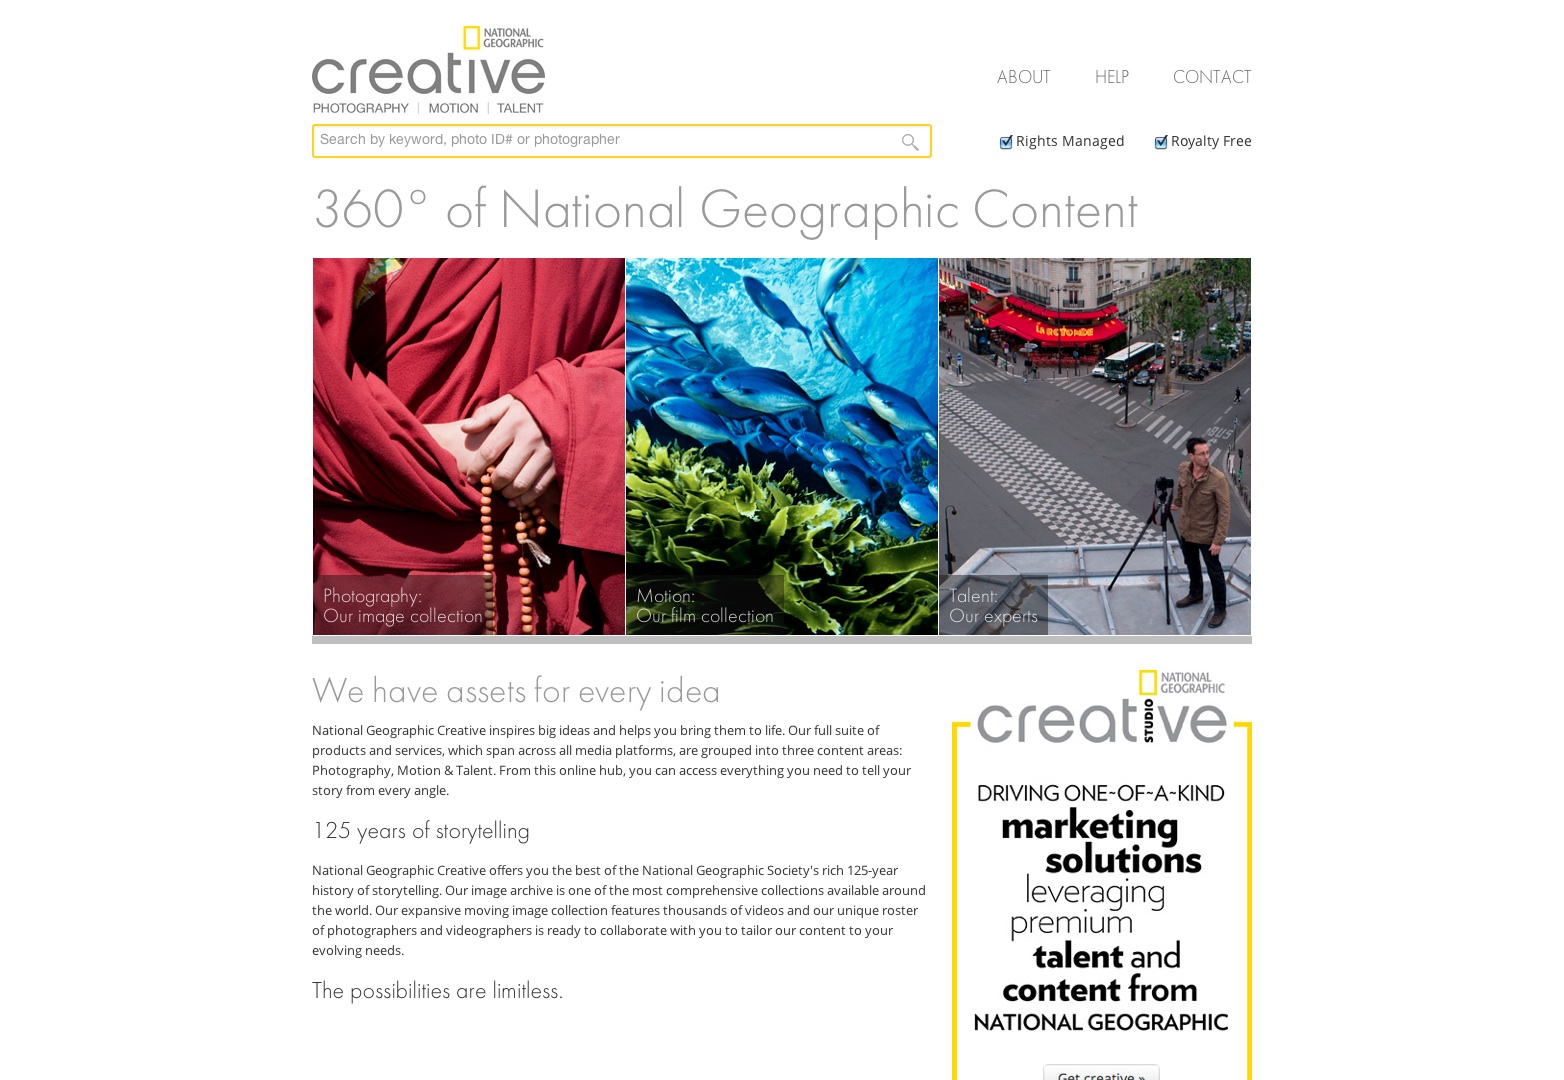 Stock Photography, Royalty-Free Images, Motion and Talent | National Geographic Creative